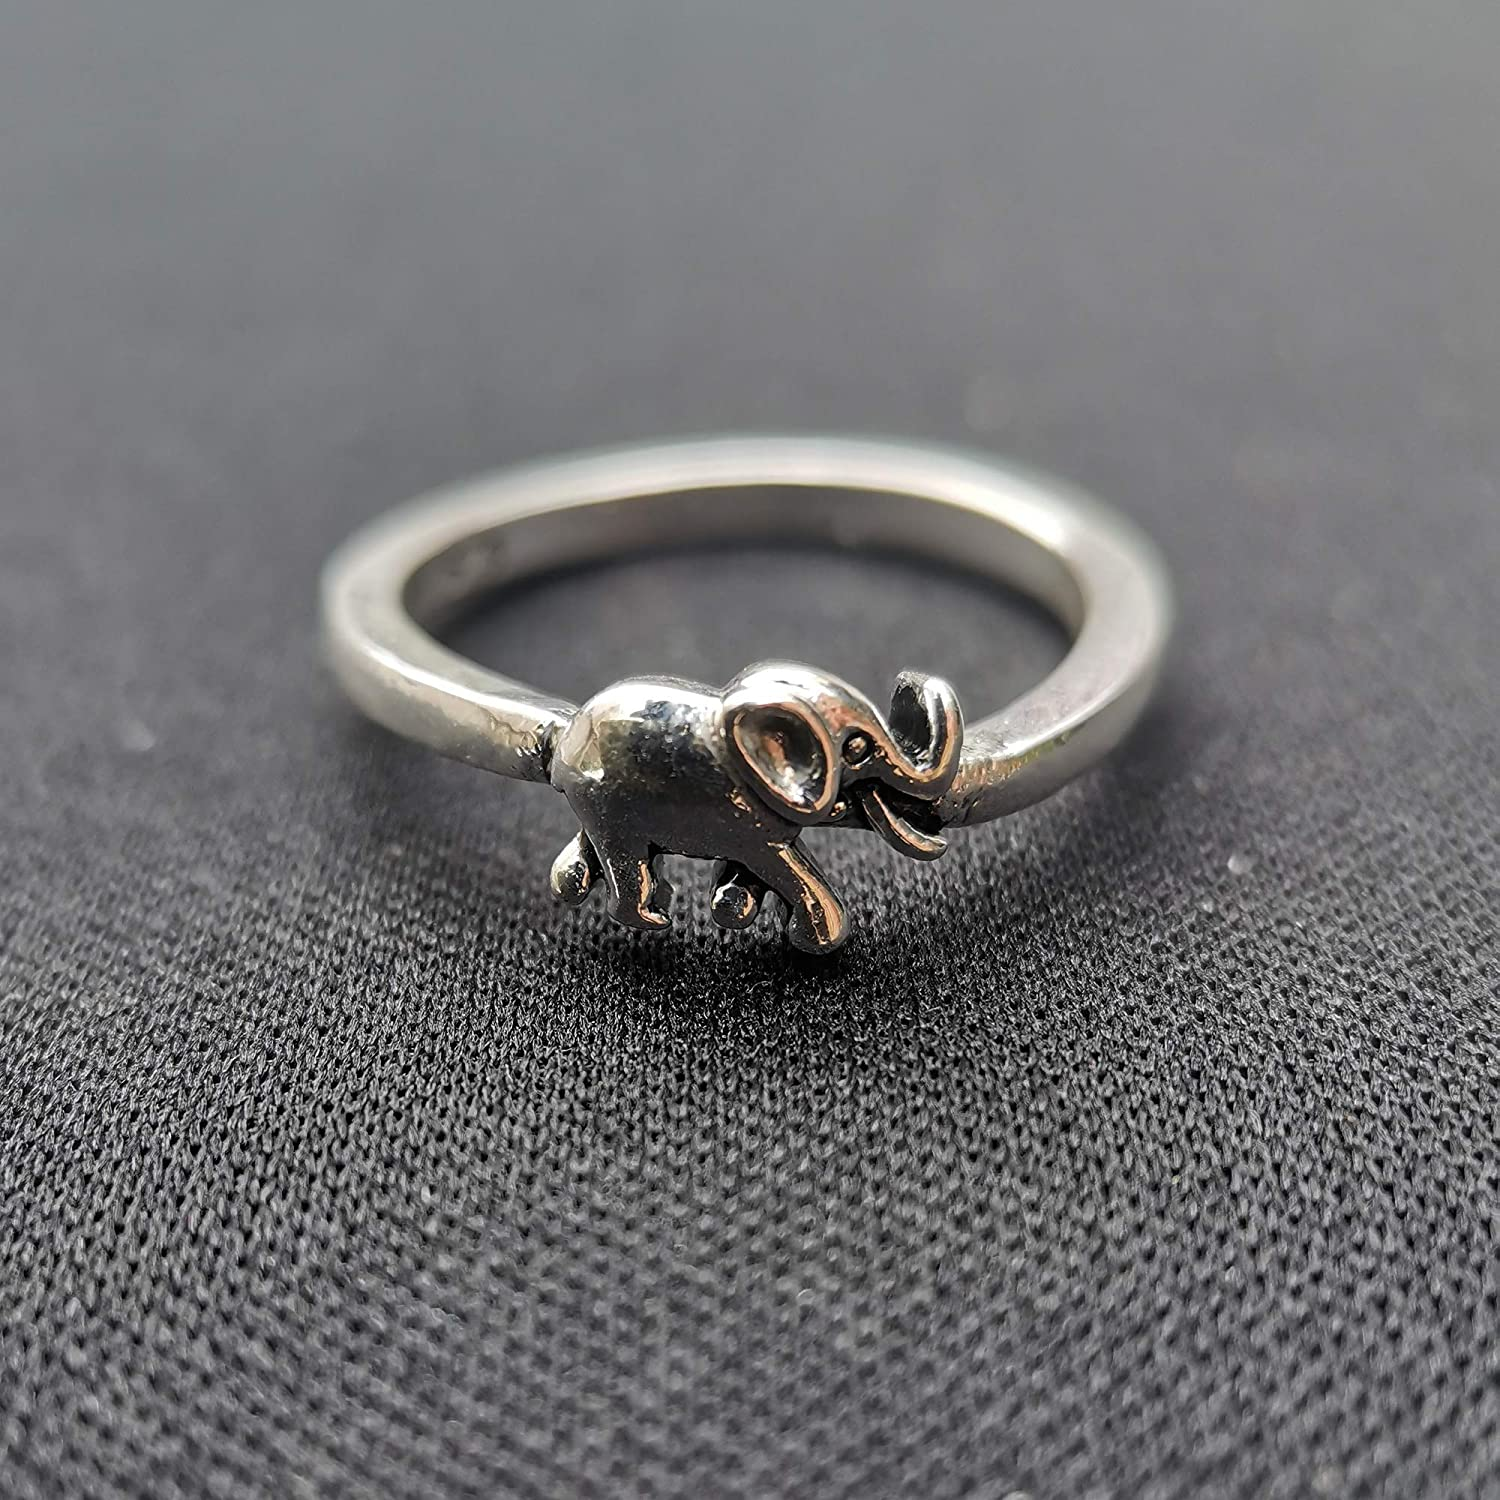 JESMING Vintage Elephant Silver Ring, 925 Sterling Silver Elephant Ring Stackable Rings Eternity Promise Rings for Her